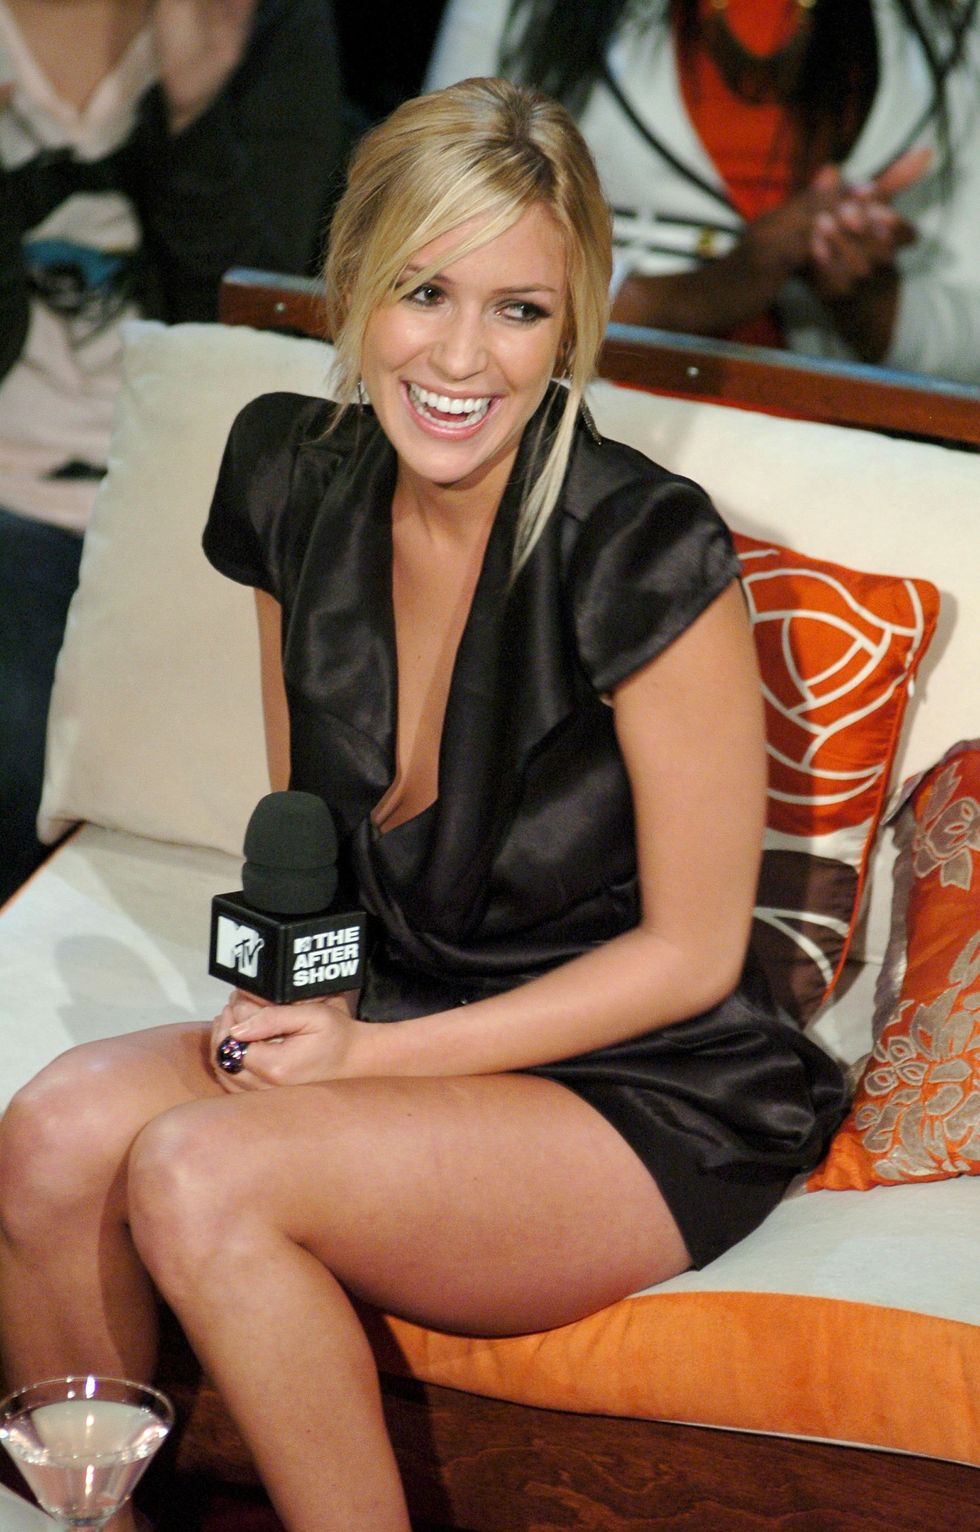 kristin-cavallari-mtvs-the-after-show-taping-in-toronto-01